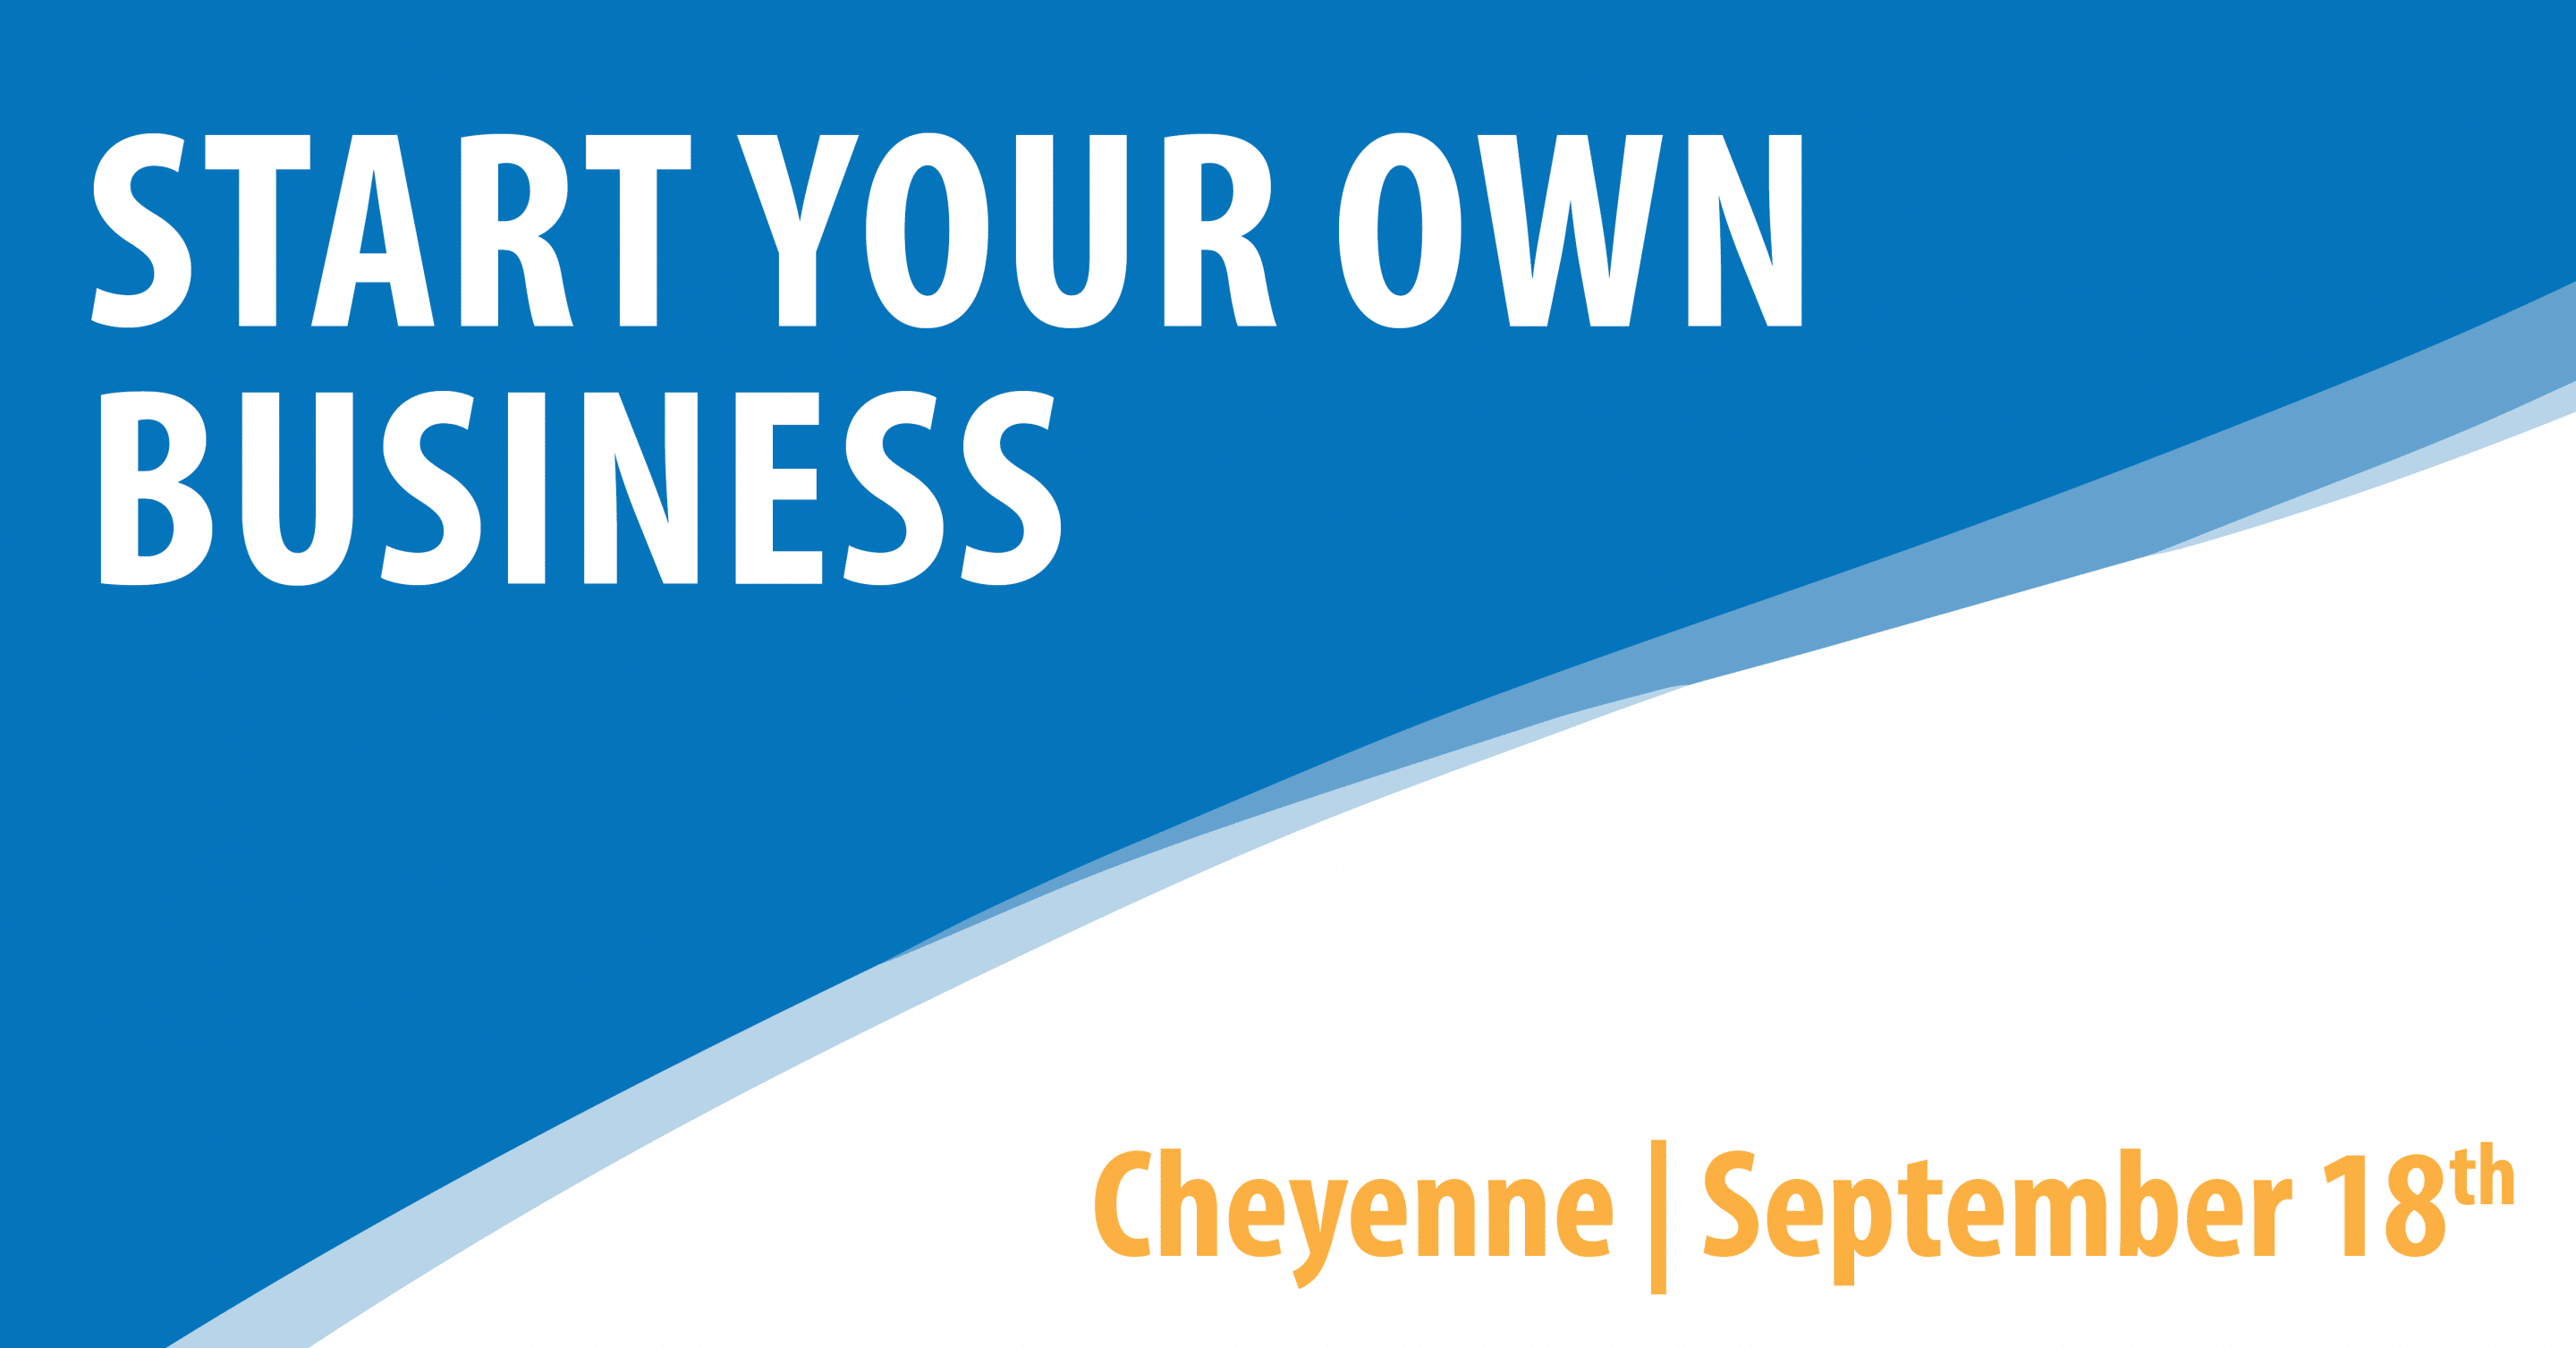 Start Your Own Business - Cheyenne